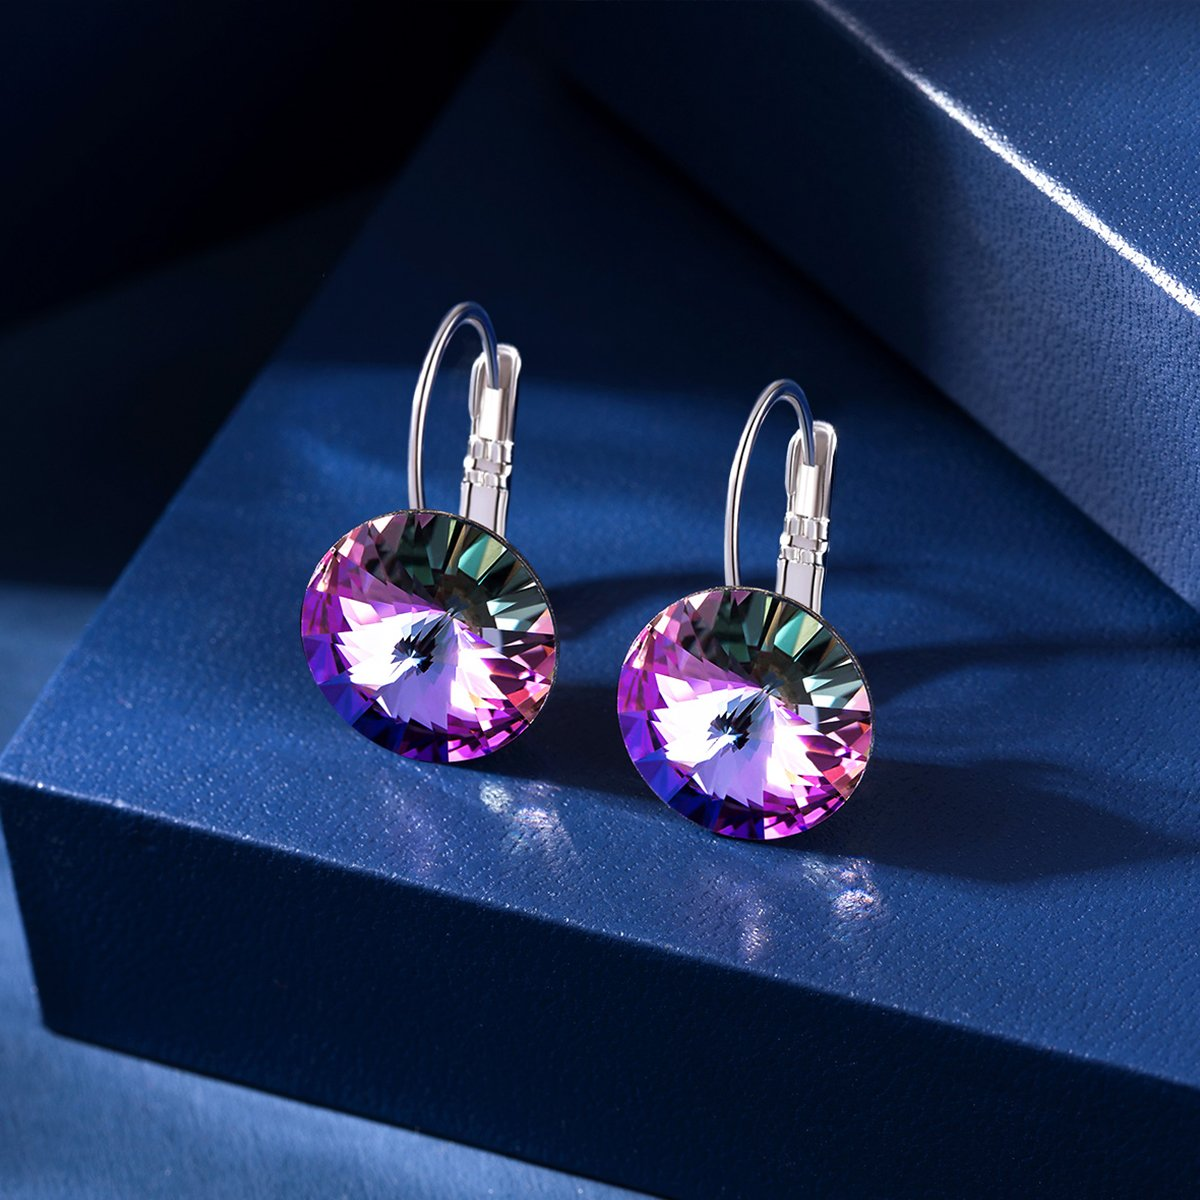 GAEA H Earrings for Women with Swarovski Crystal-Stud Earrings for Women Fashion for Birthday Valentines Day Gifts Fashion Simple Crystal Stud Earrings from Swarovski Daily Wear for Girls GHJE076